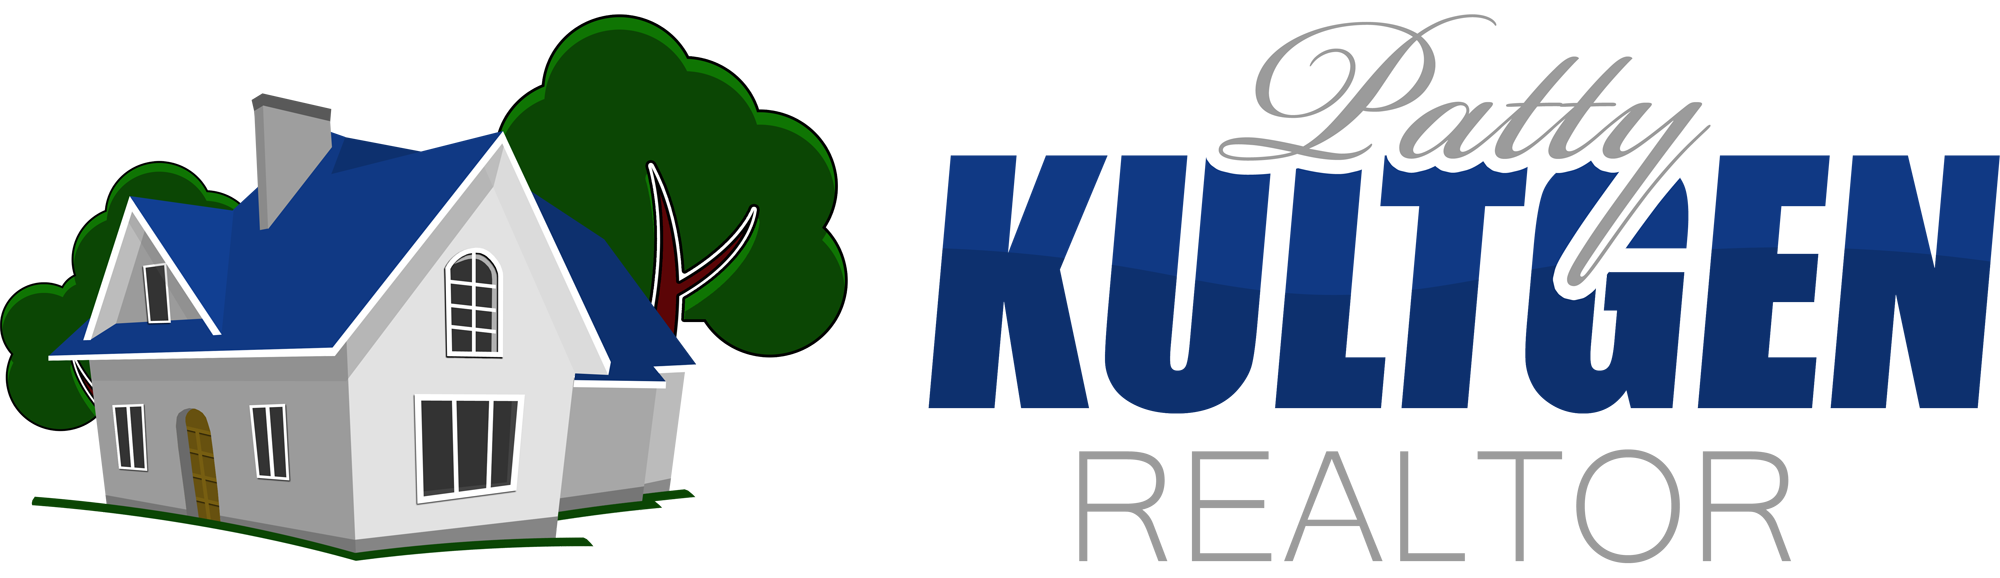 Logo Design by Jeff Gilmet - Entry No. 60 in the Logo Design Contest Logo Design Needed for Exciting New Company Patricia Kultgen Realtor.